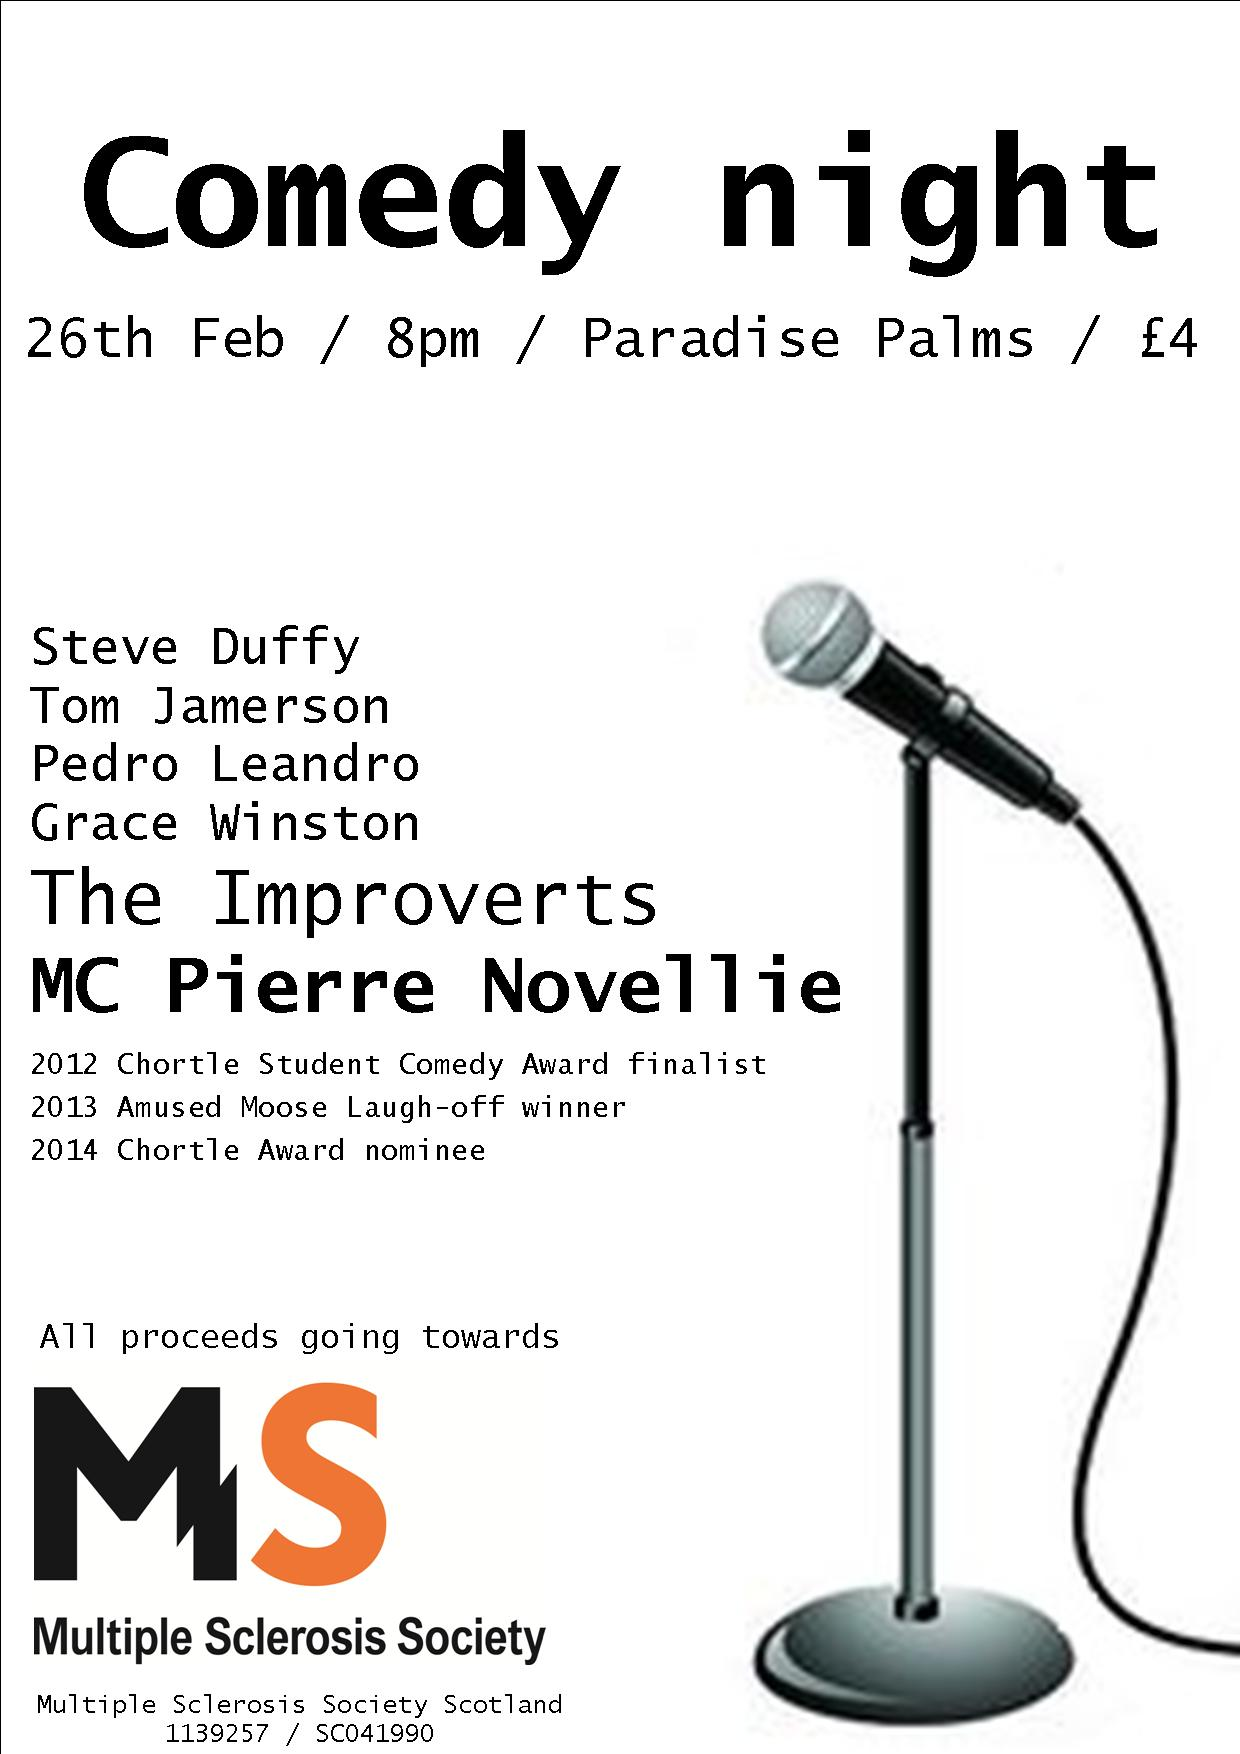 RT @EdMSSociety: Hiya @frankieboyle please help us spread the word about our comedy night tomorrow, all money going to @mssocietyscot http:…